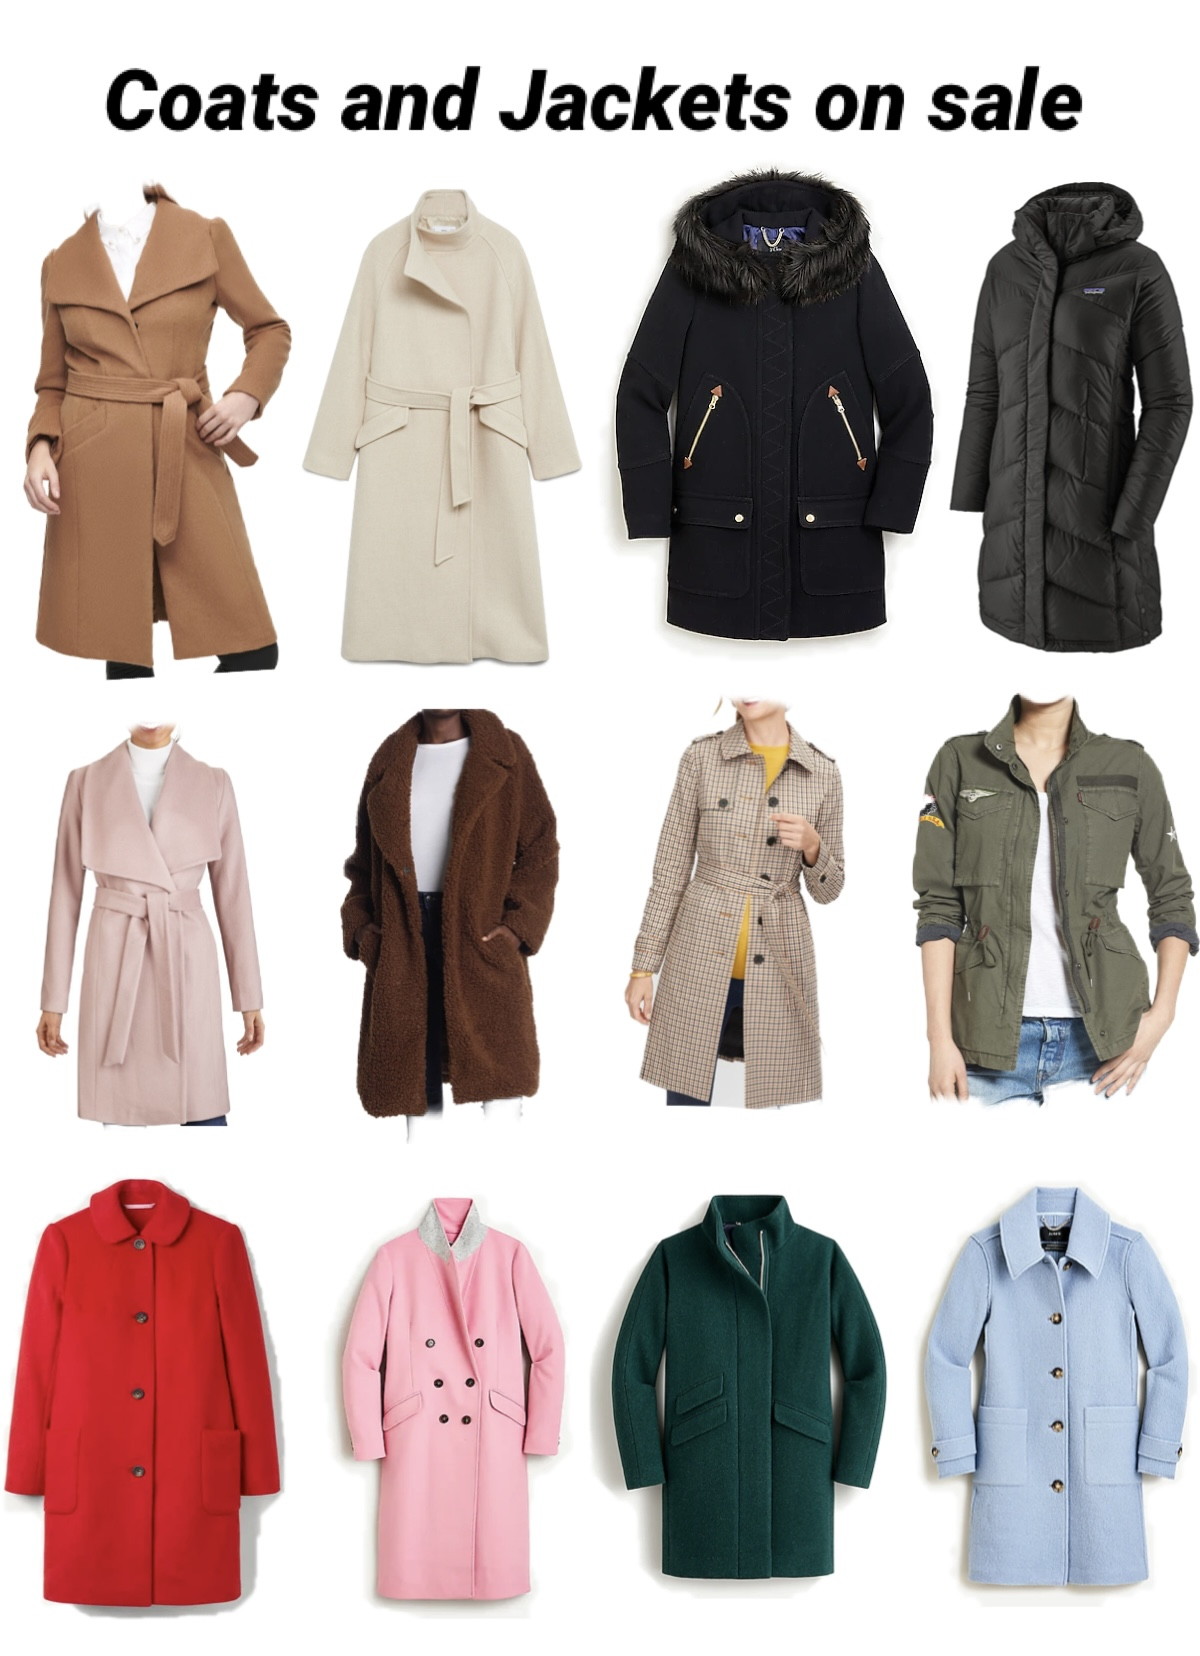 Cyber Minday sales- Coats and Jackets on sale |Green Beauty by popular Maryland beauty blog, Dreaming Loud: collage image of women's jackets and coats.